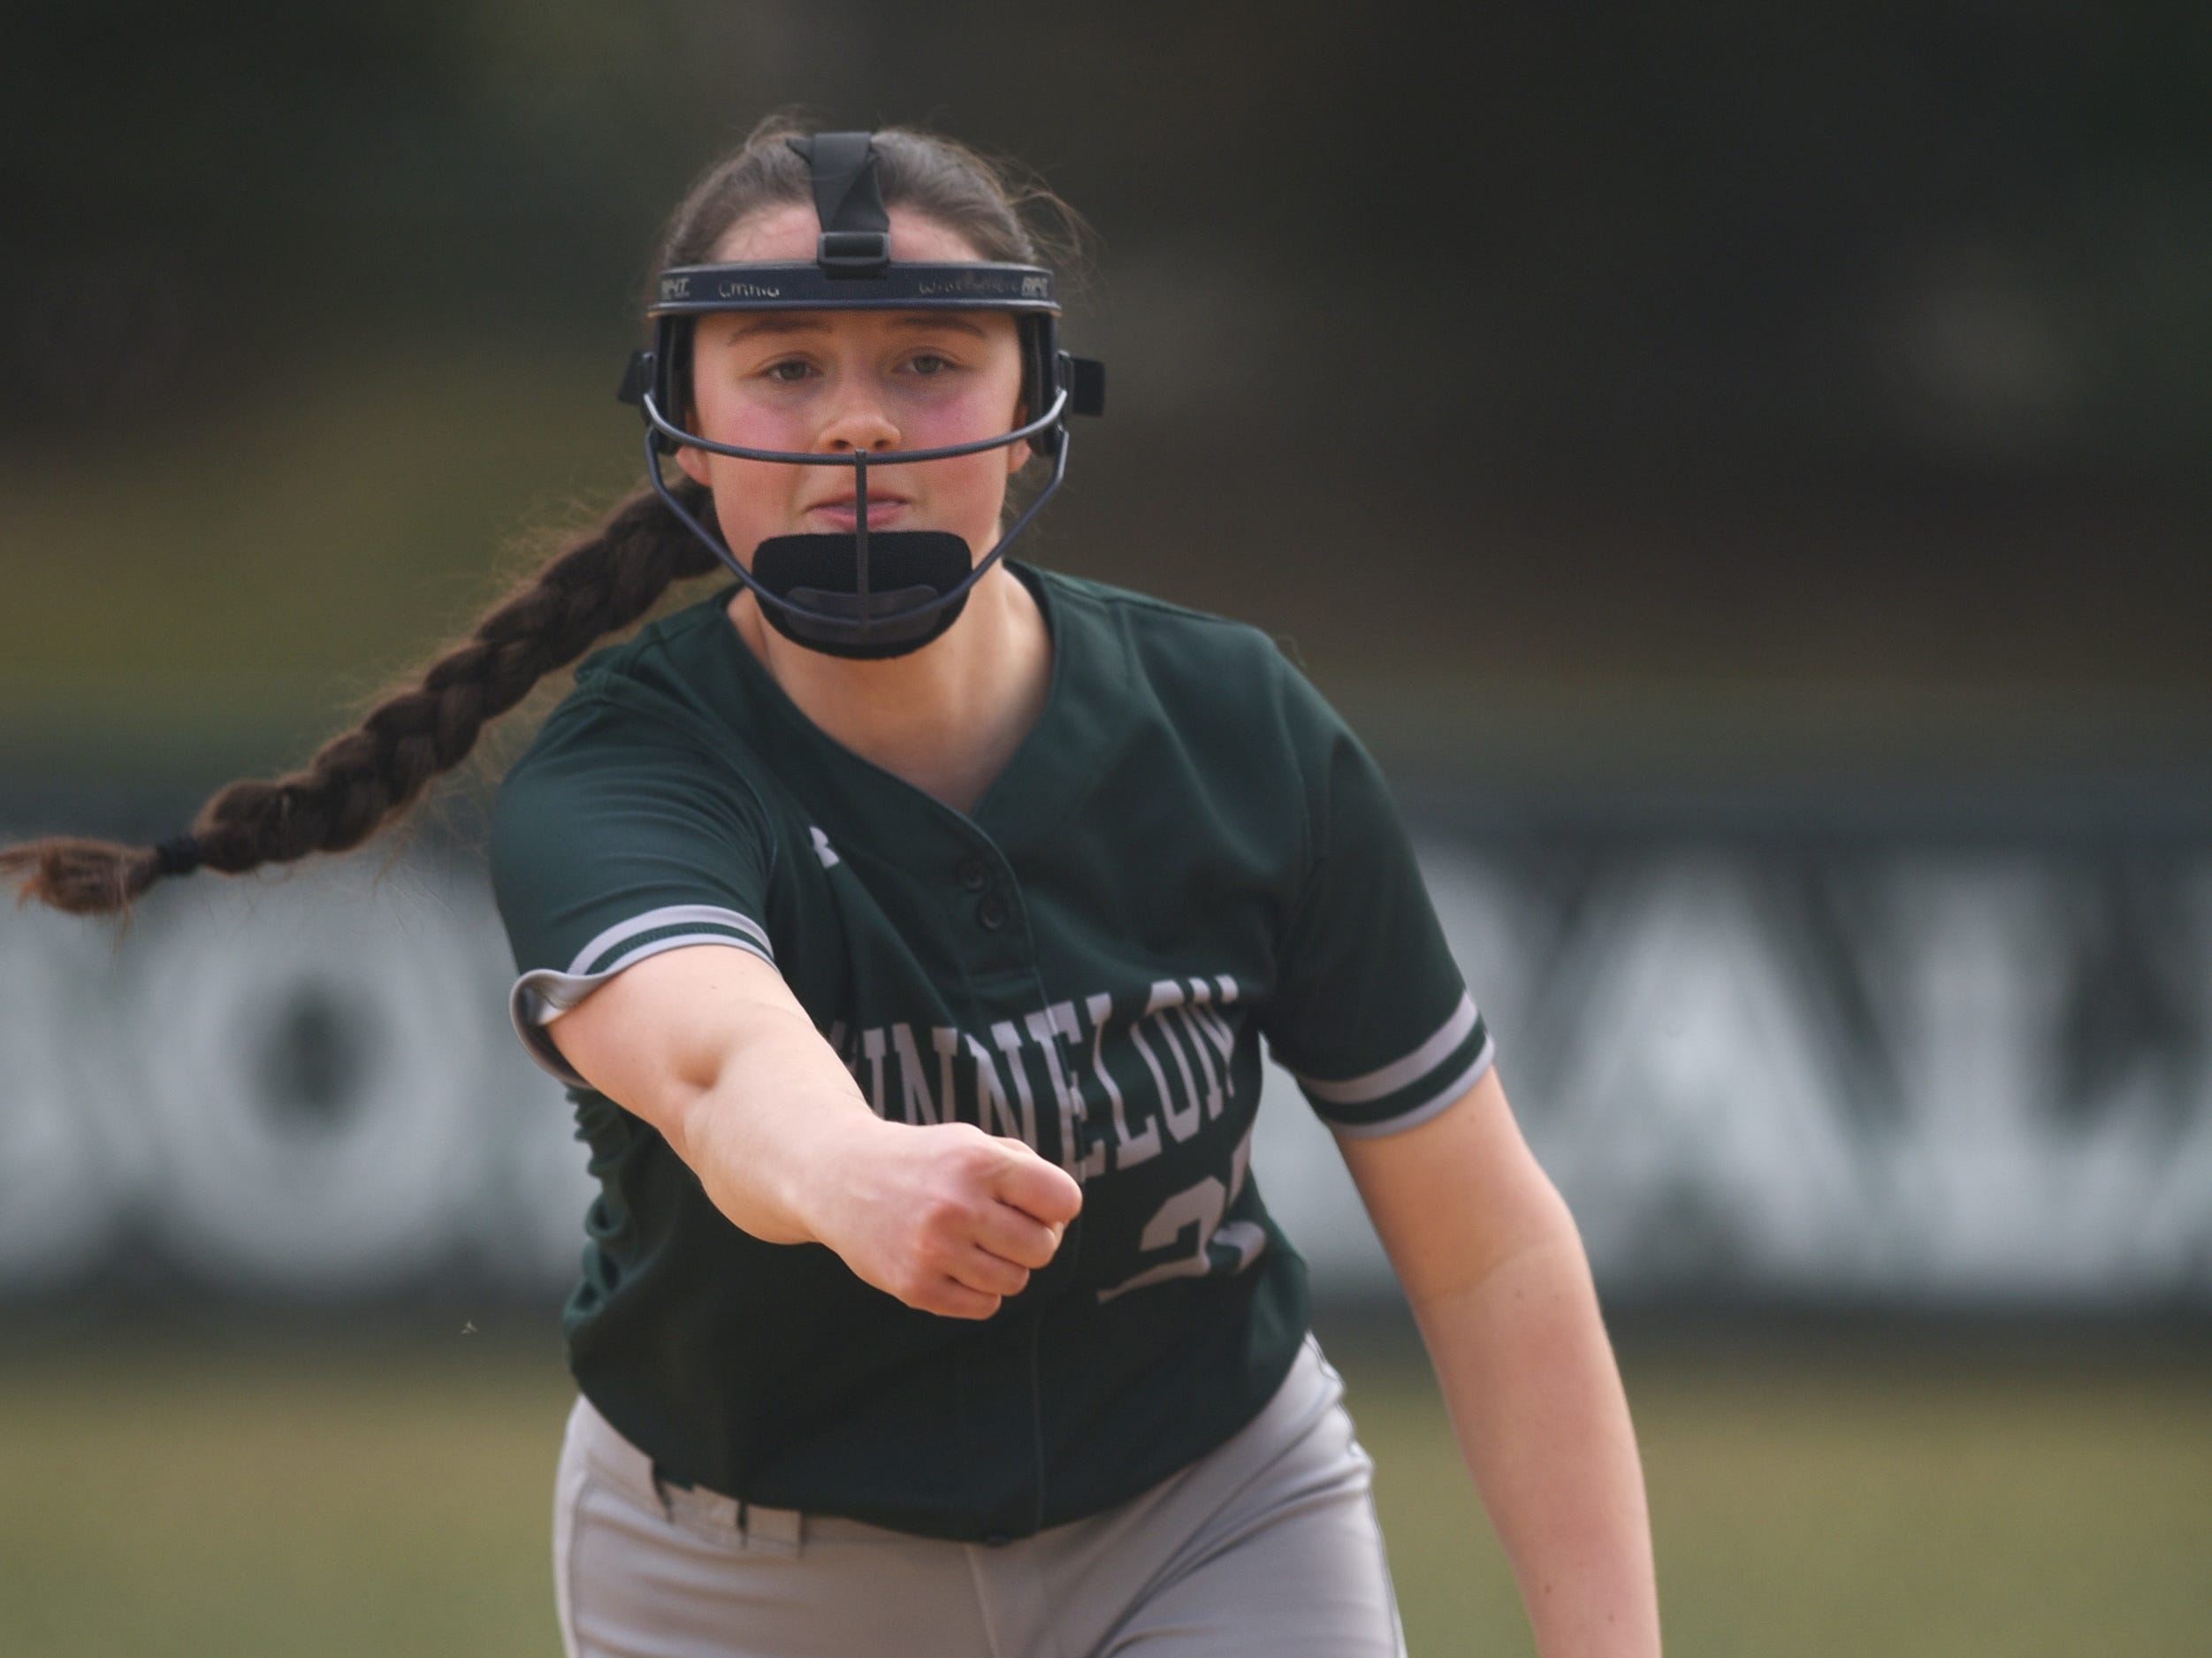 Pequannock at Kinnelon softball game in Kinnelon on Friday April 12, 2019. K#27 Emma Whittemore pitches the ball.